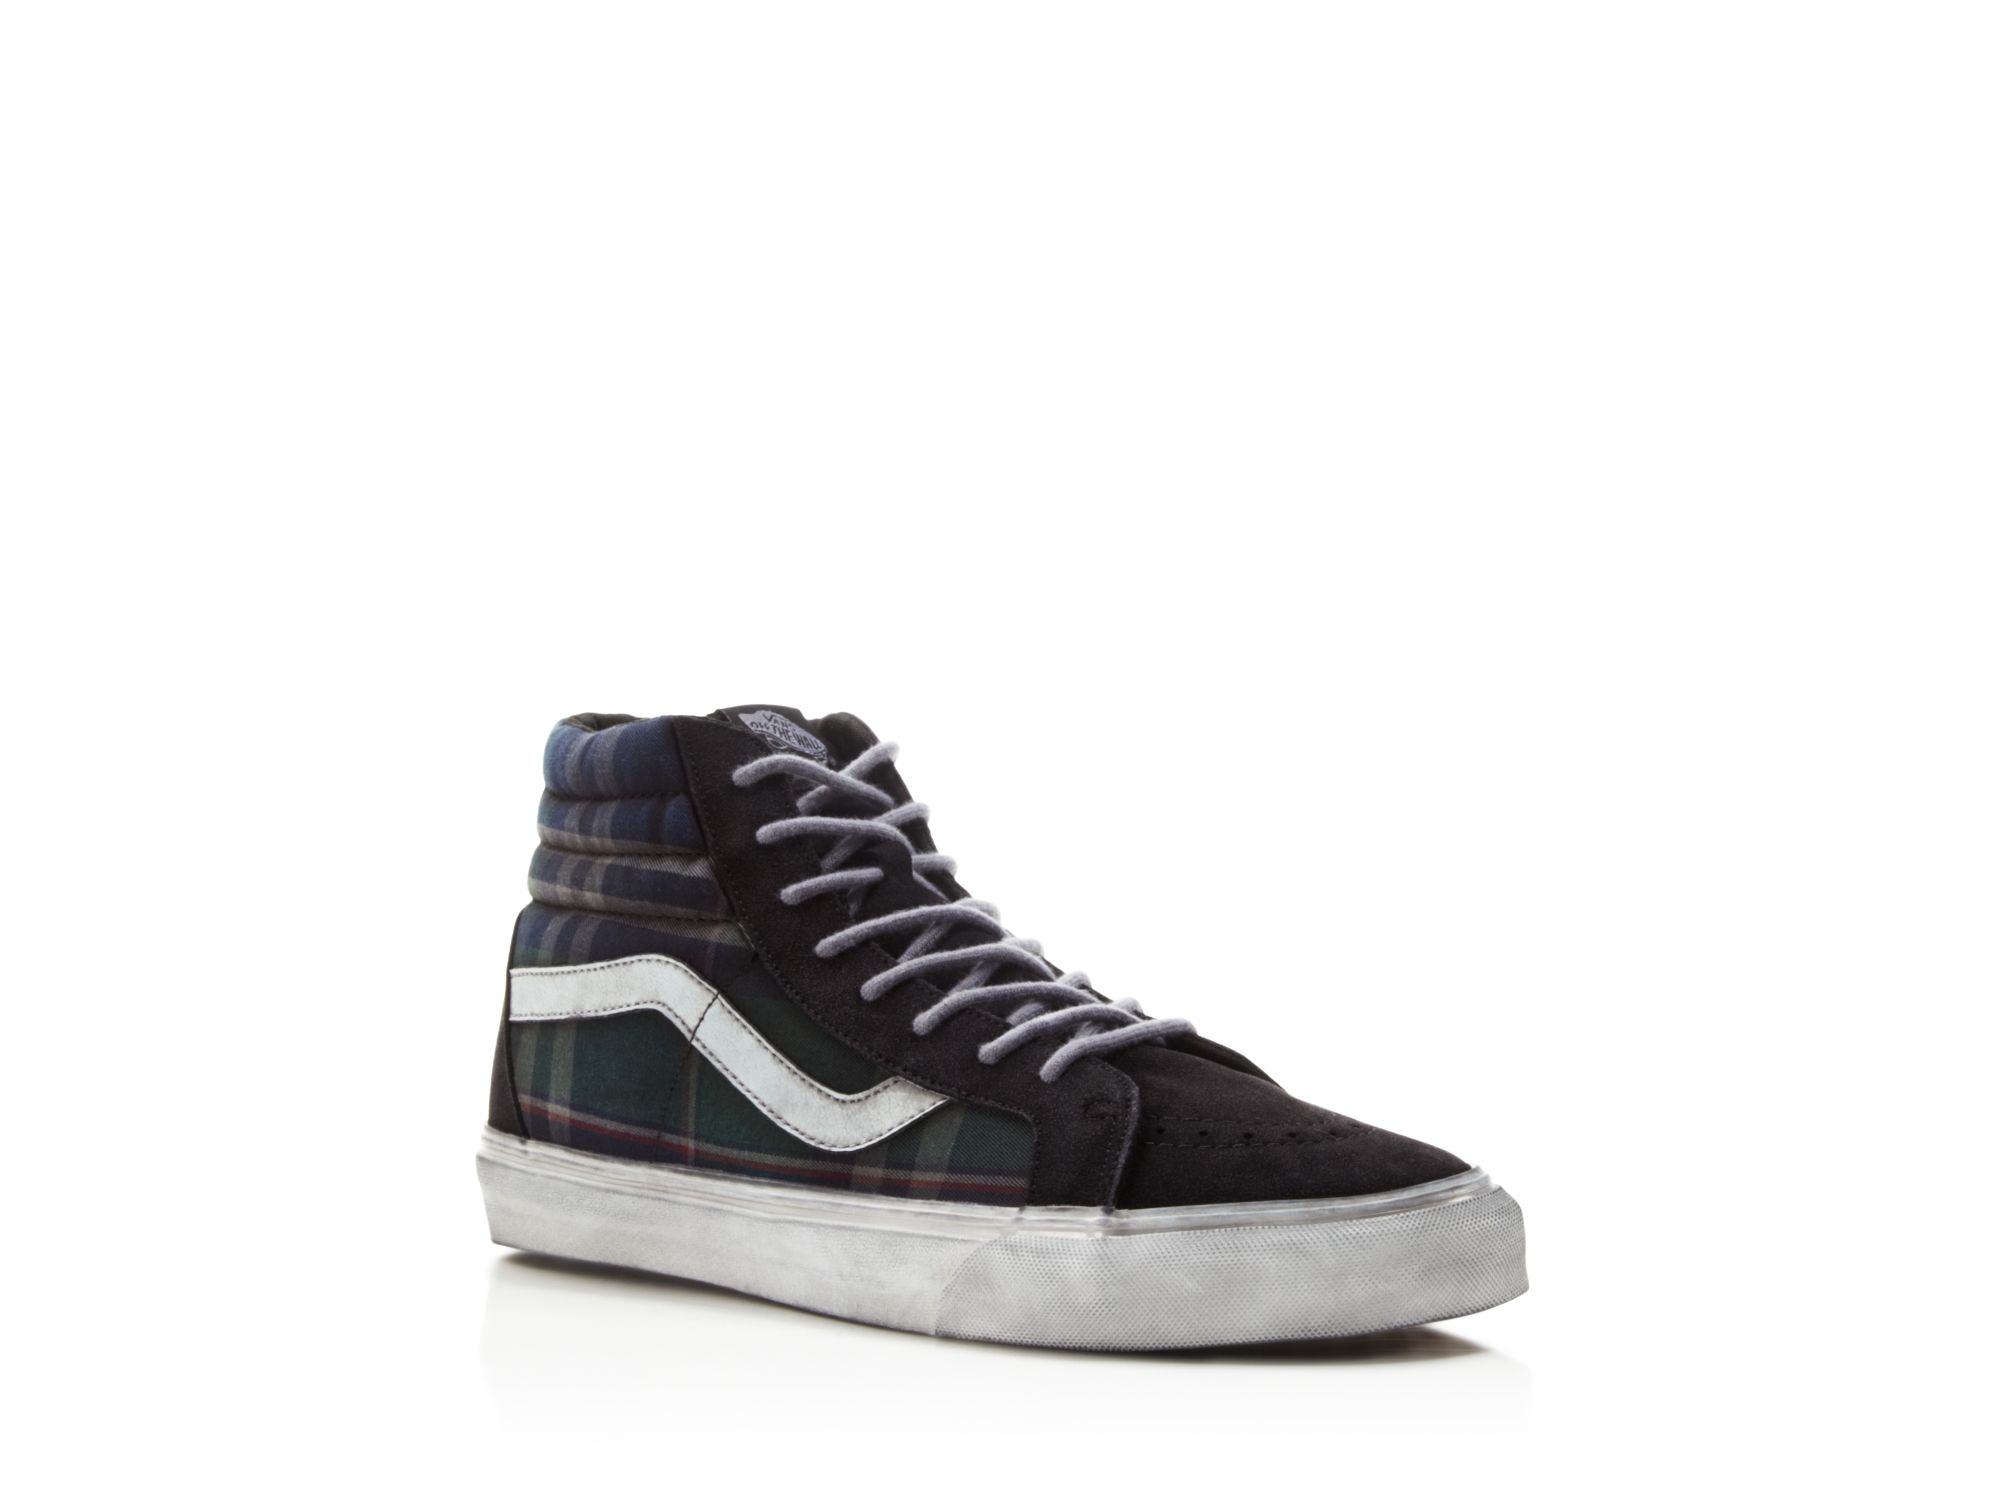 9a0110e75b Lyst - Vans Sk8-hi Reissue Ca Overwashed Plaid Sneakers in Black for Men